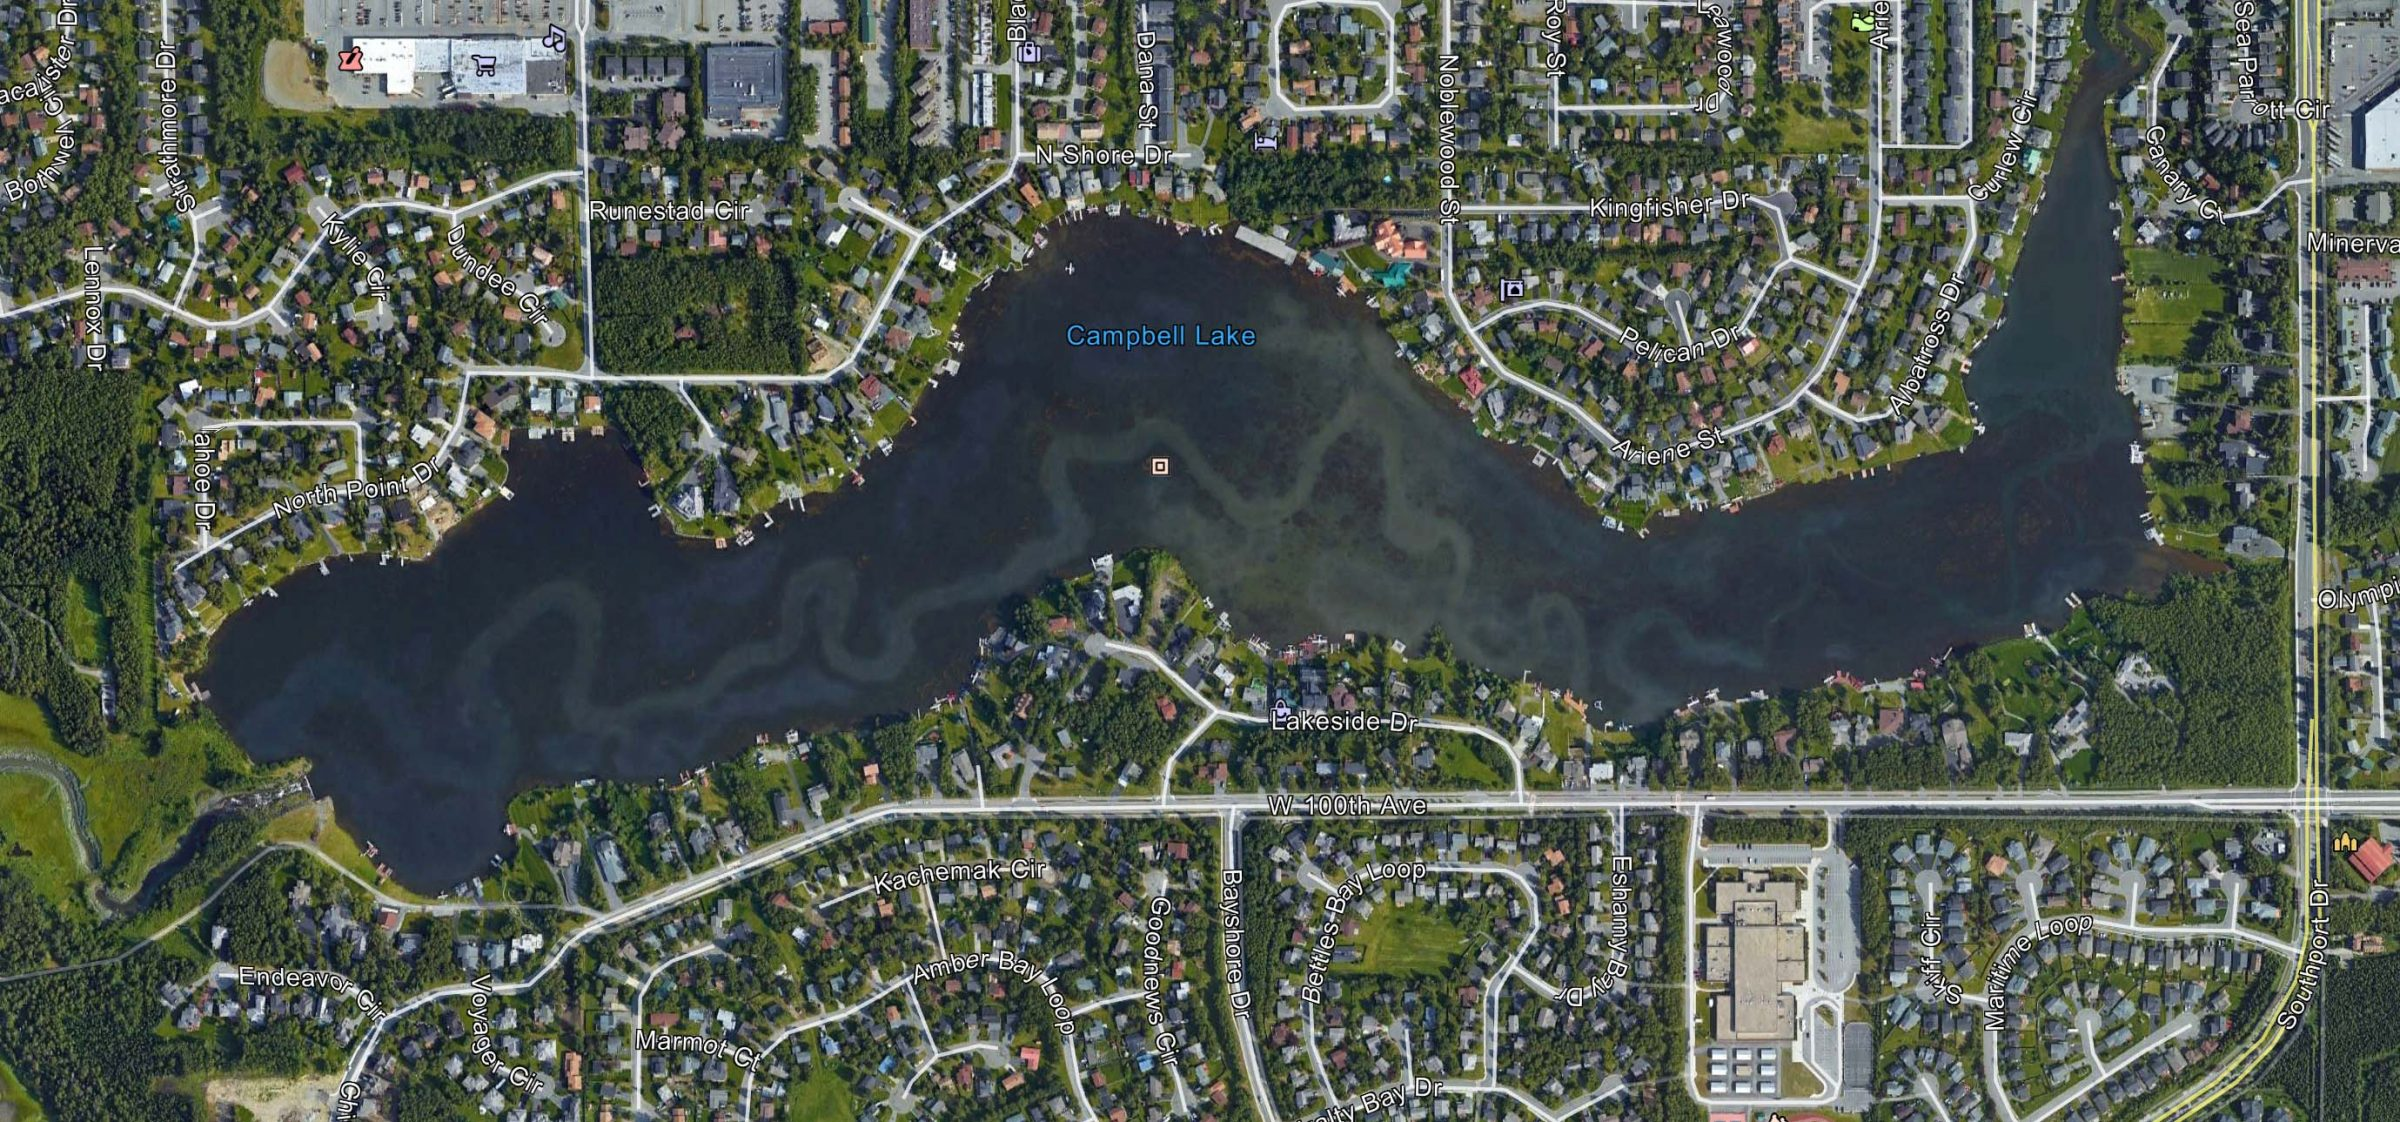 Satellite imagery of Campbell Lake